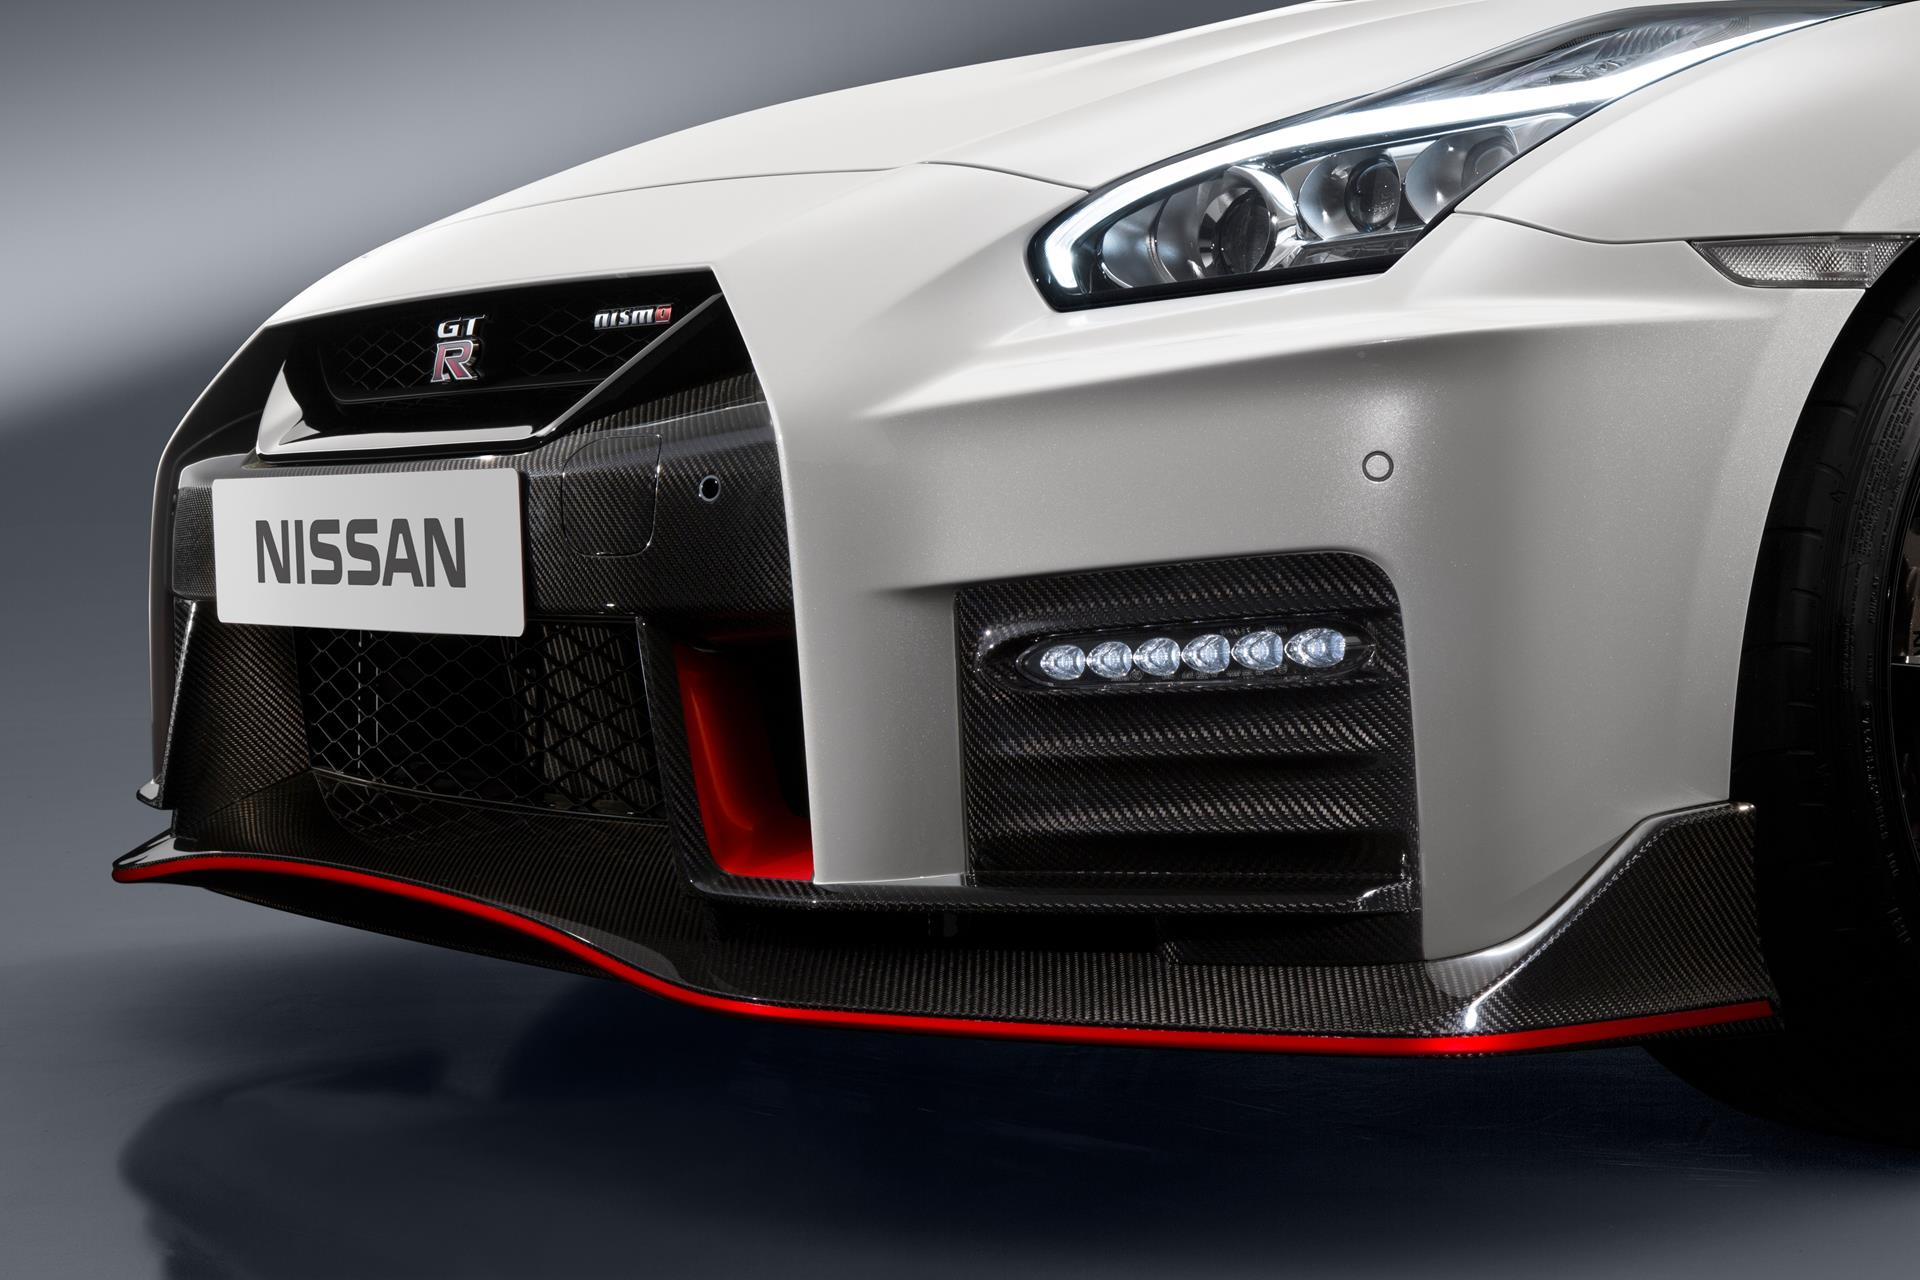 NISSAN GT-R NISMO 新しいバンパー形状